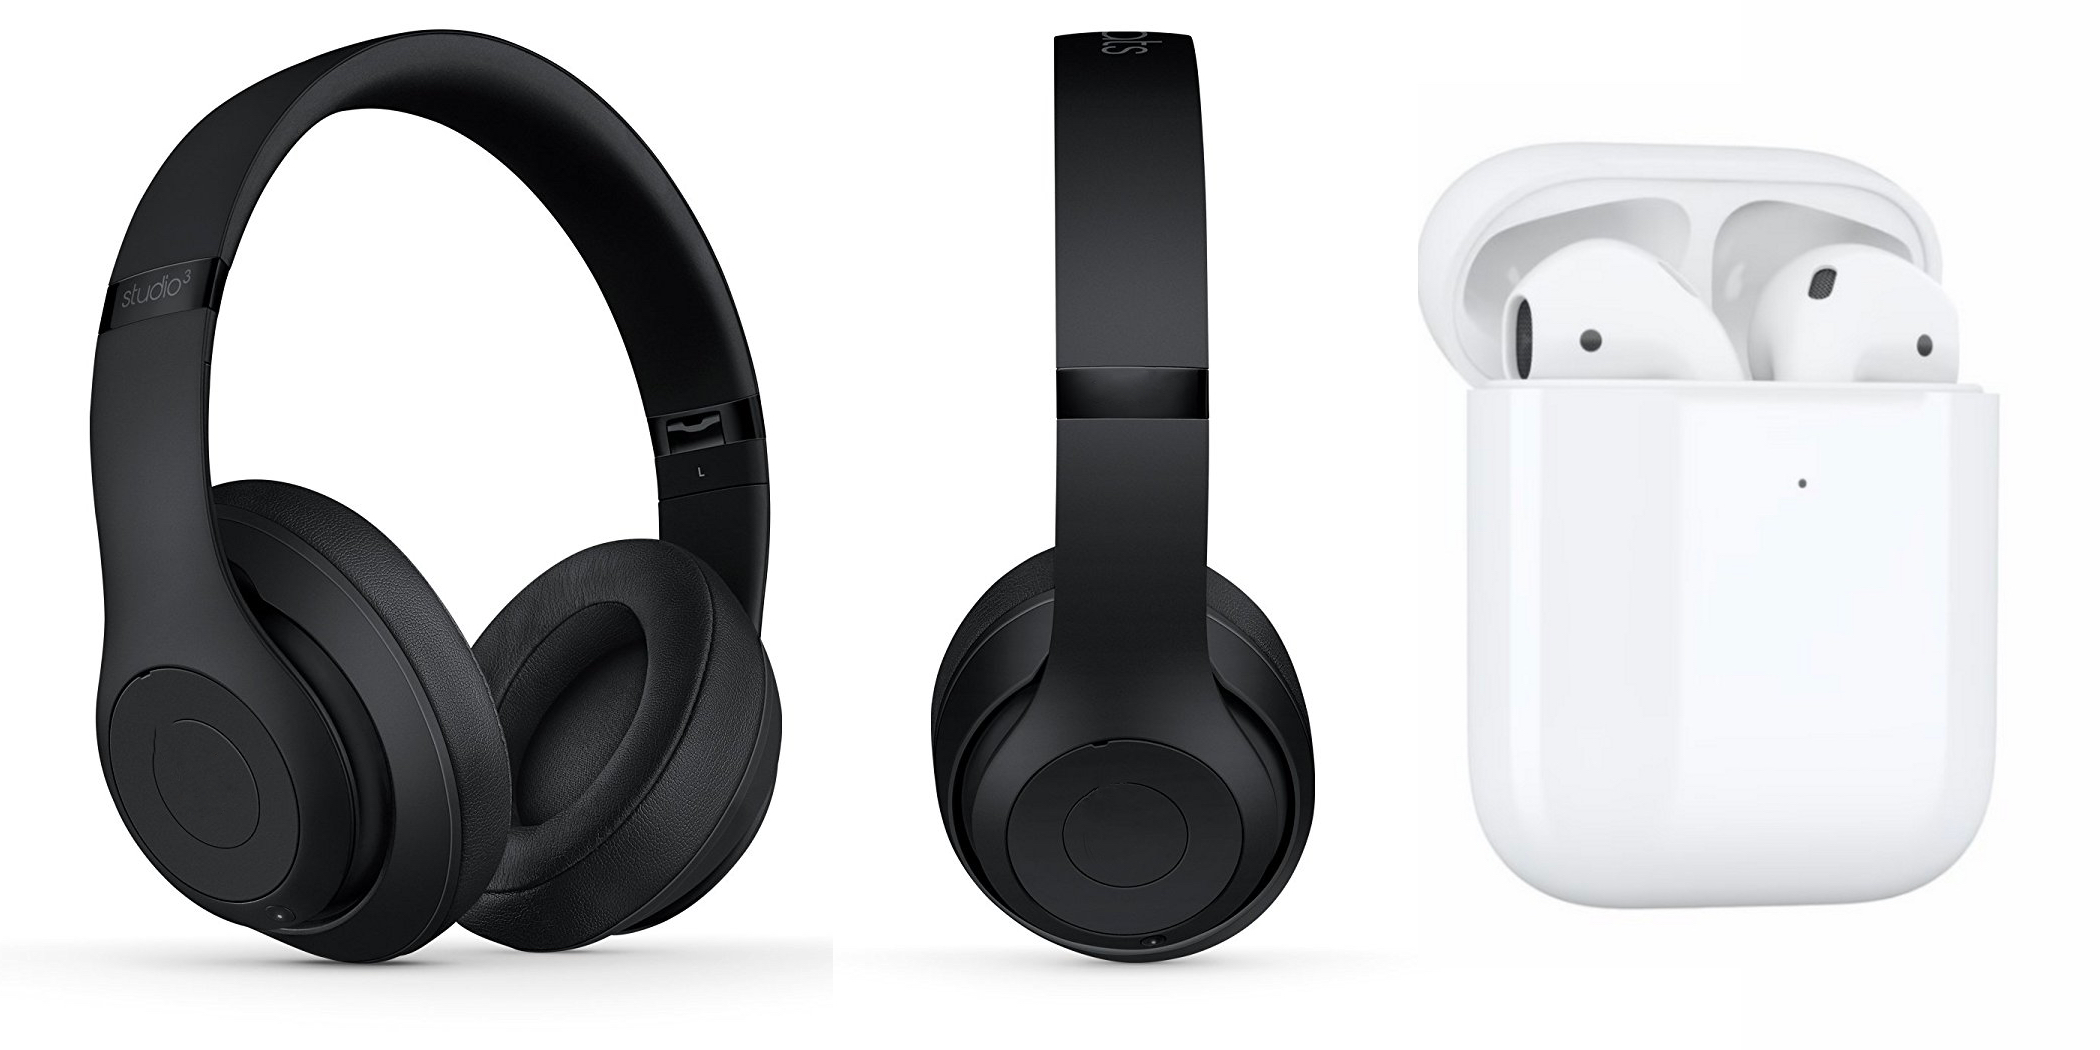 KGI: Apple to release all new high-end over-ear headphones later this year